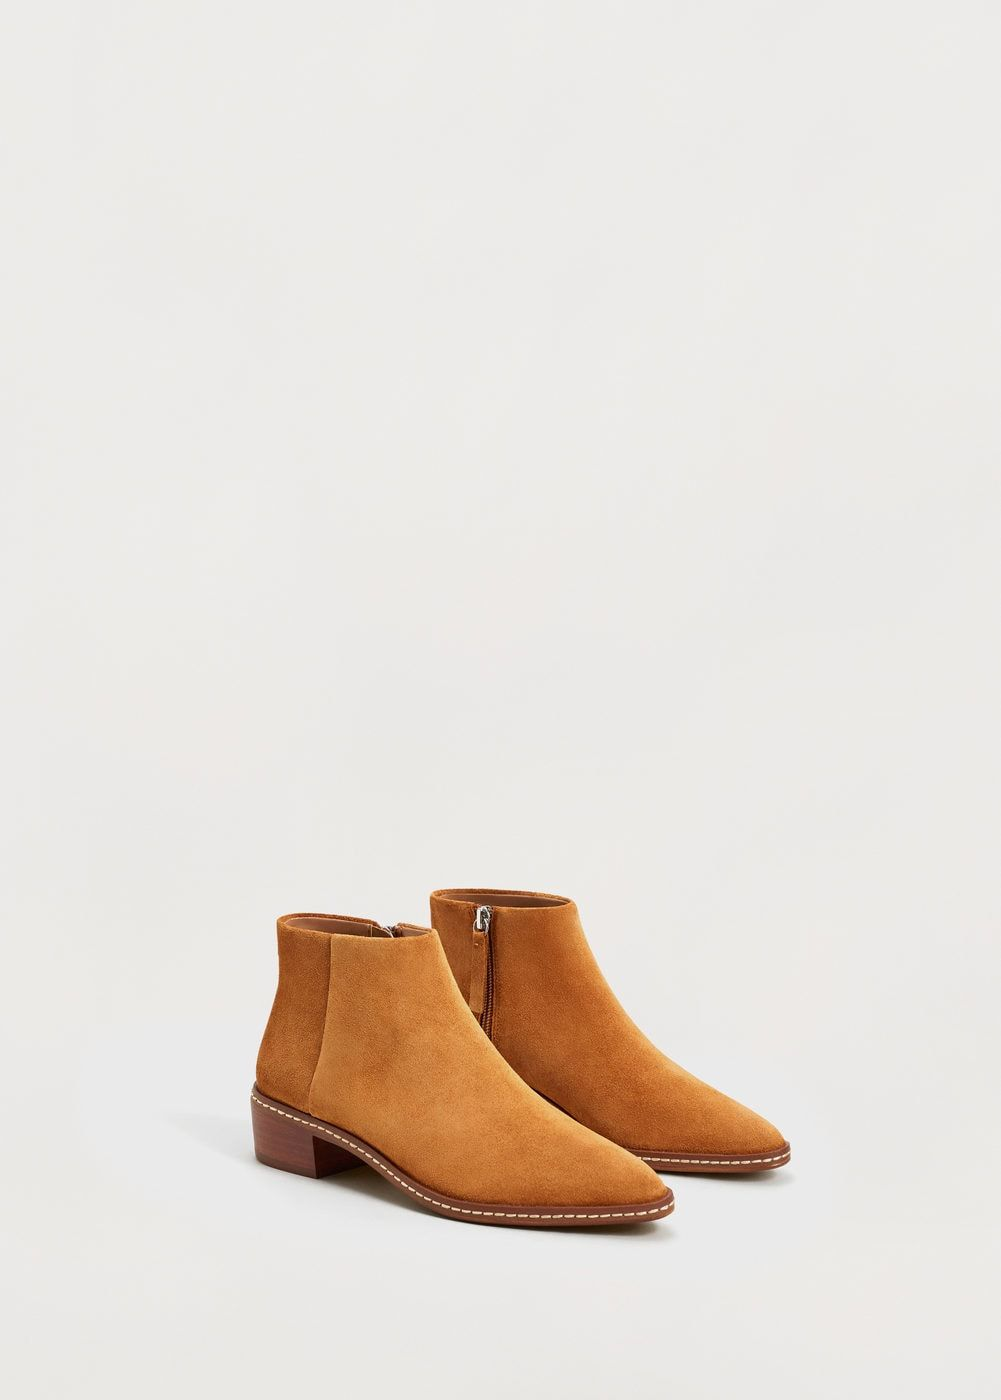 Suede Ankle Boots Plus Sizes Shoes For The Soul Pinterest Flat Boot 2cm F Foleather Women Mango Usa